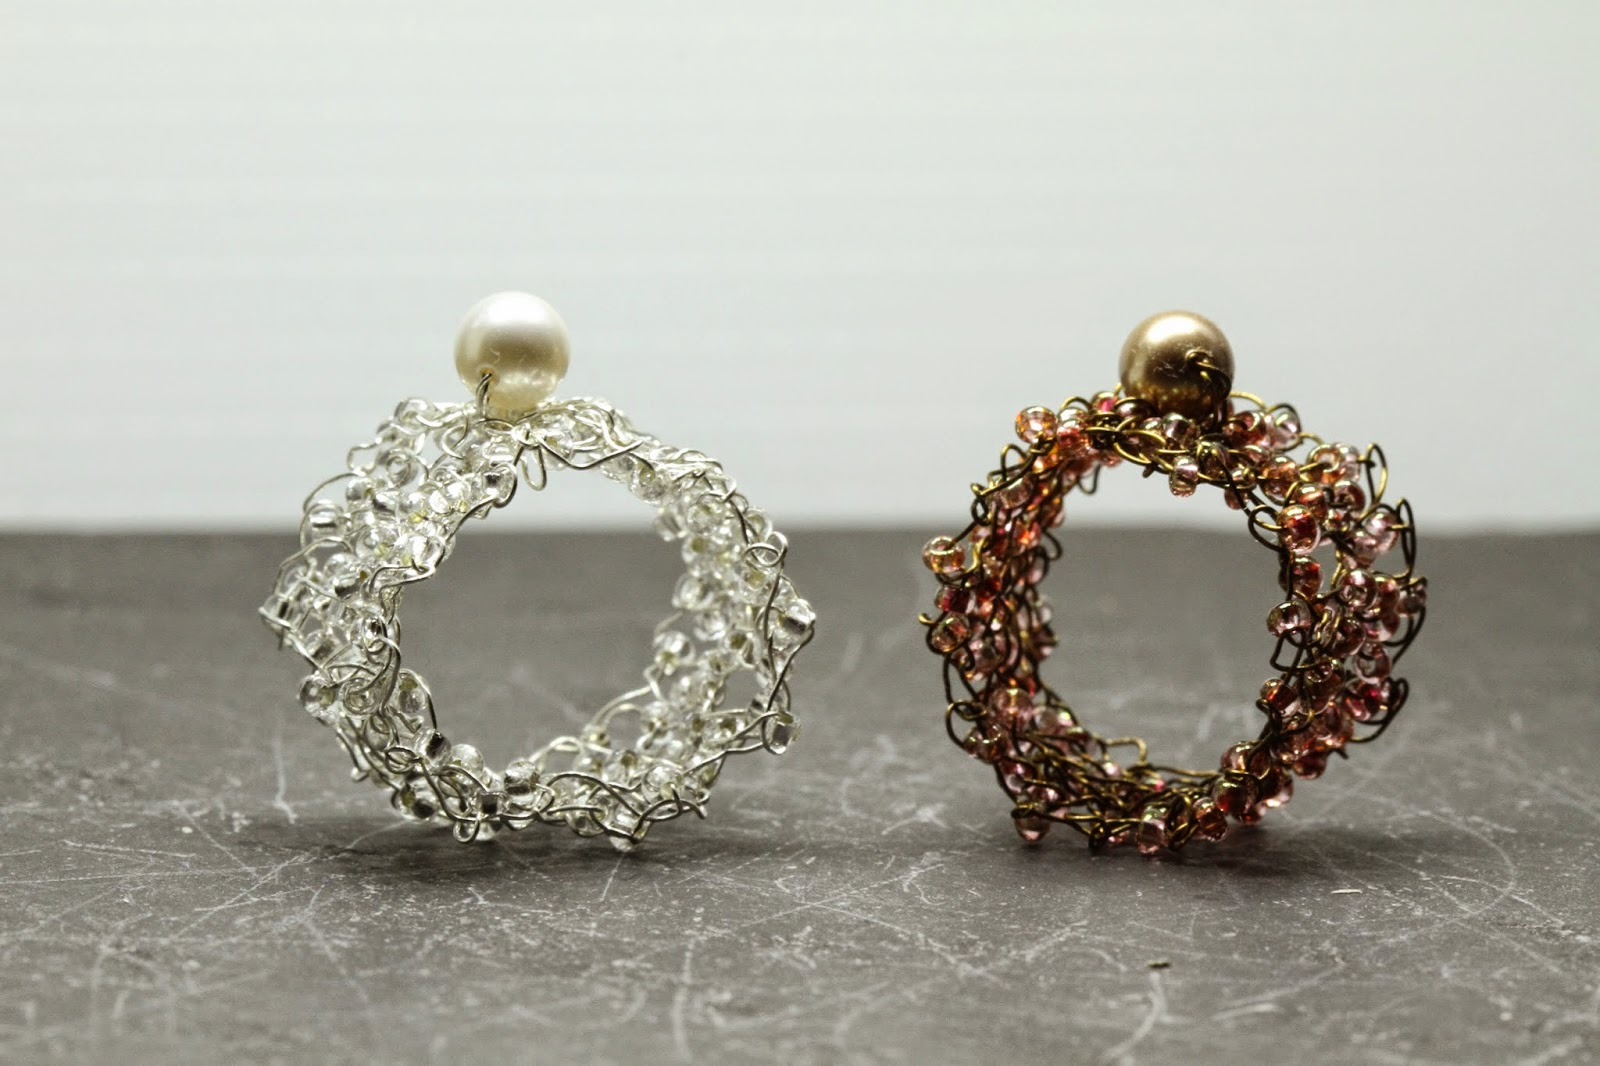 web cotton rings knitted silver ring plait com zopfring silber in fastgefaehrlich portfolio en